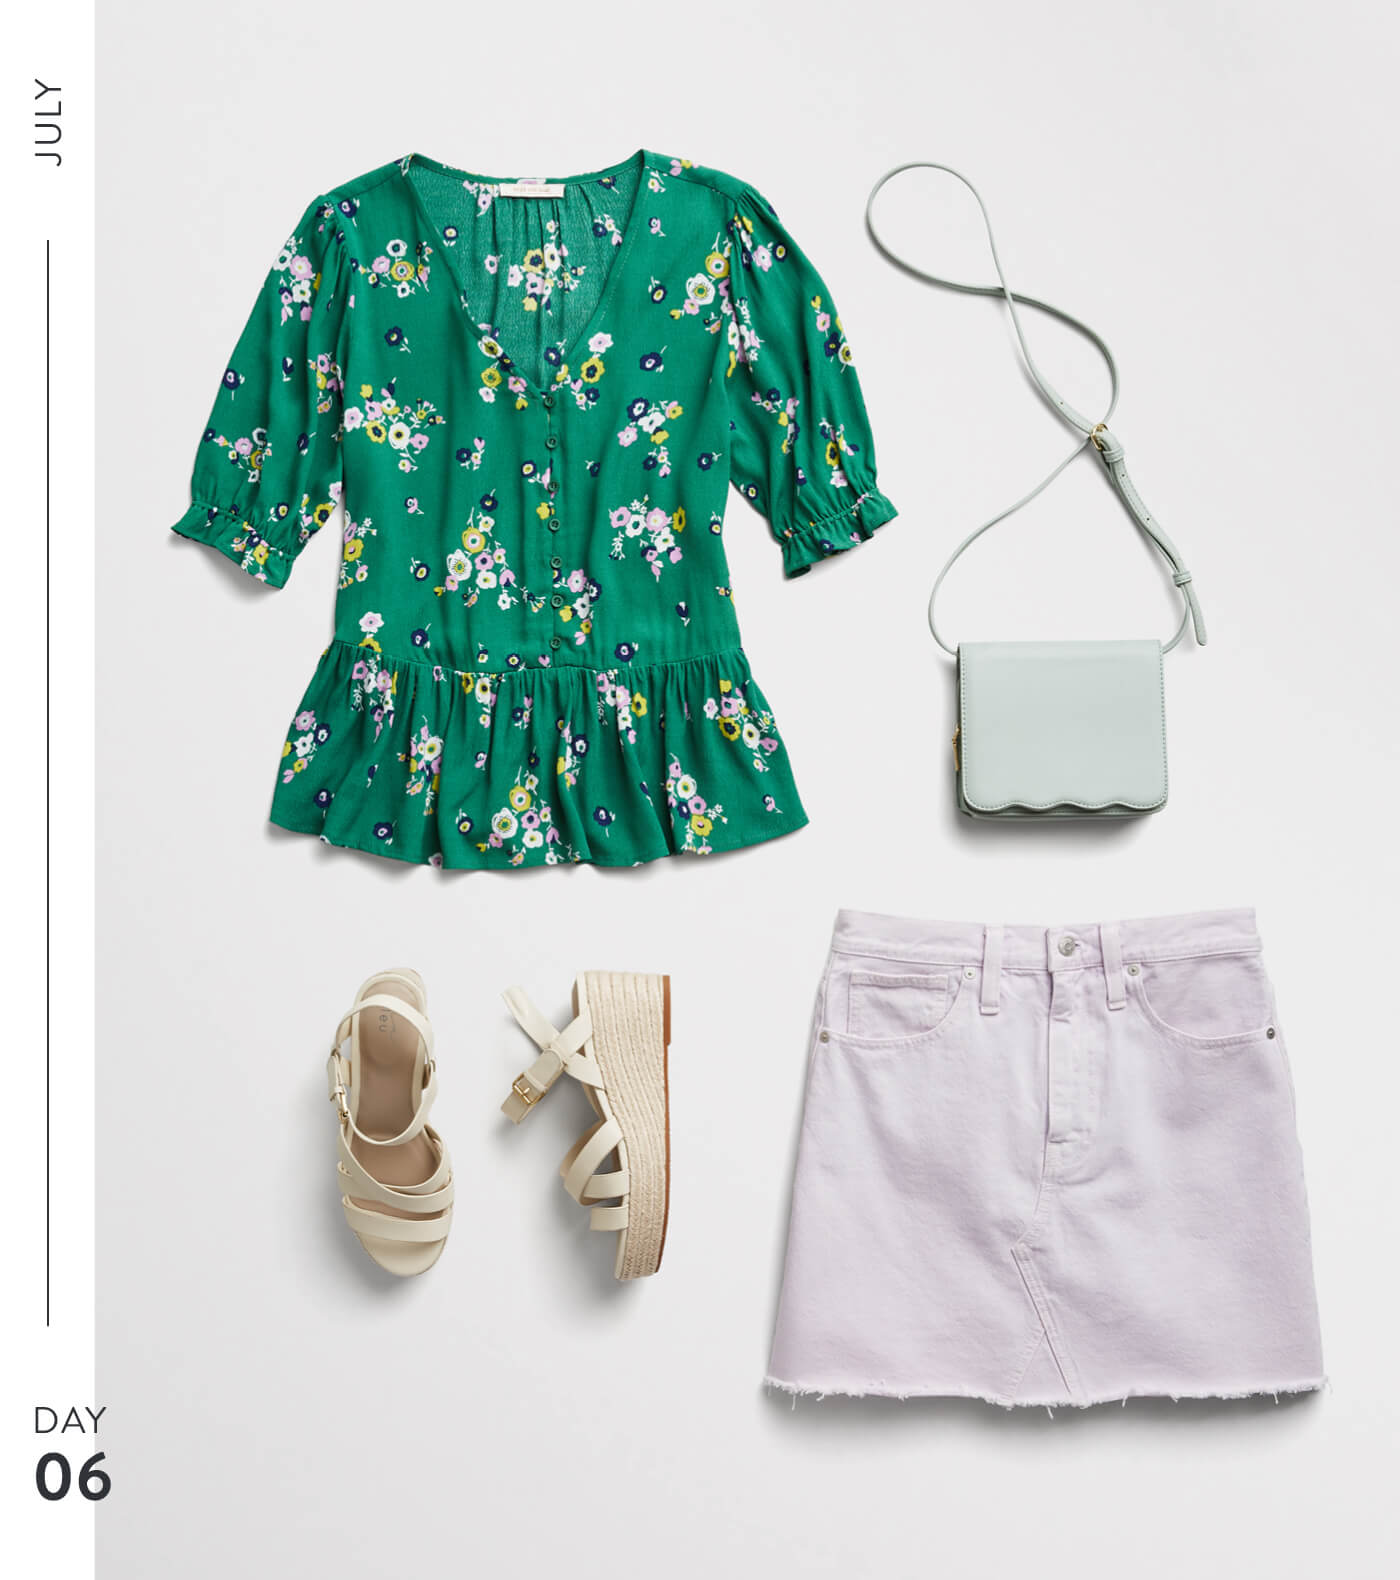 T3_W19_BLG_July-Month-of-Outfits-_357260432_6